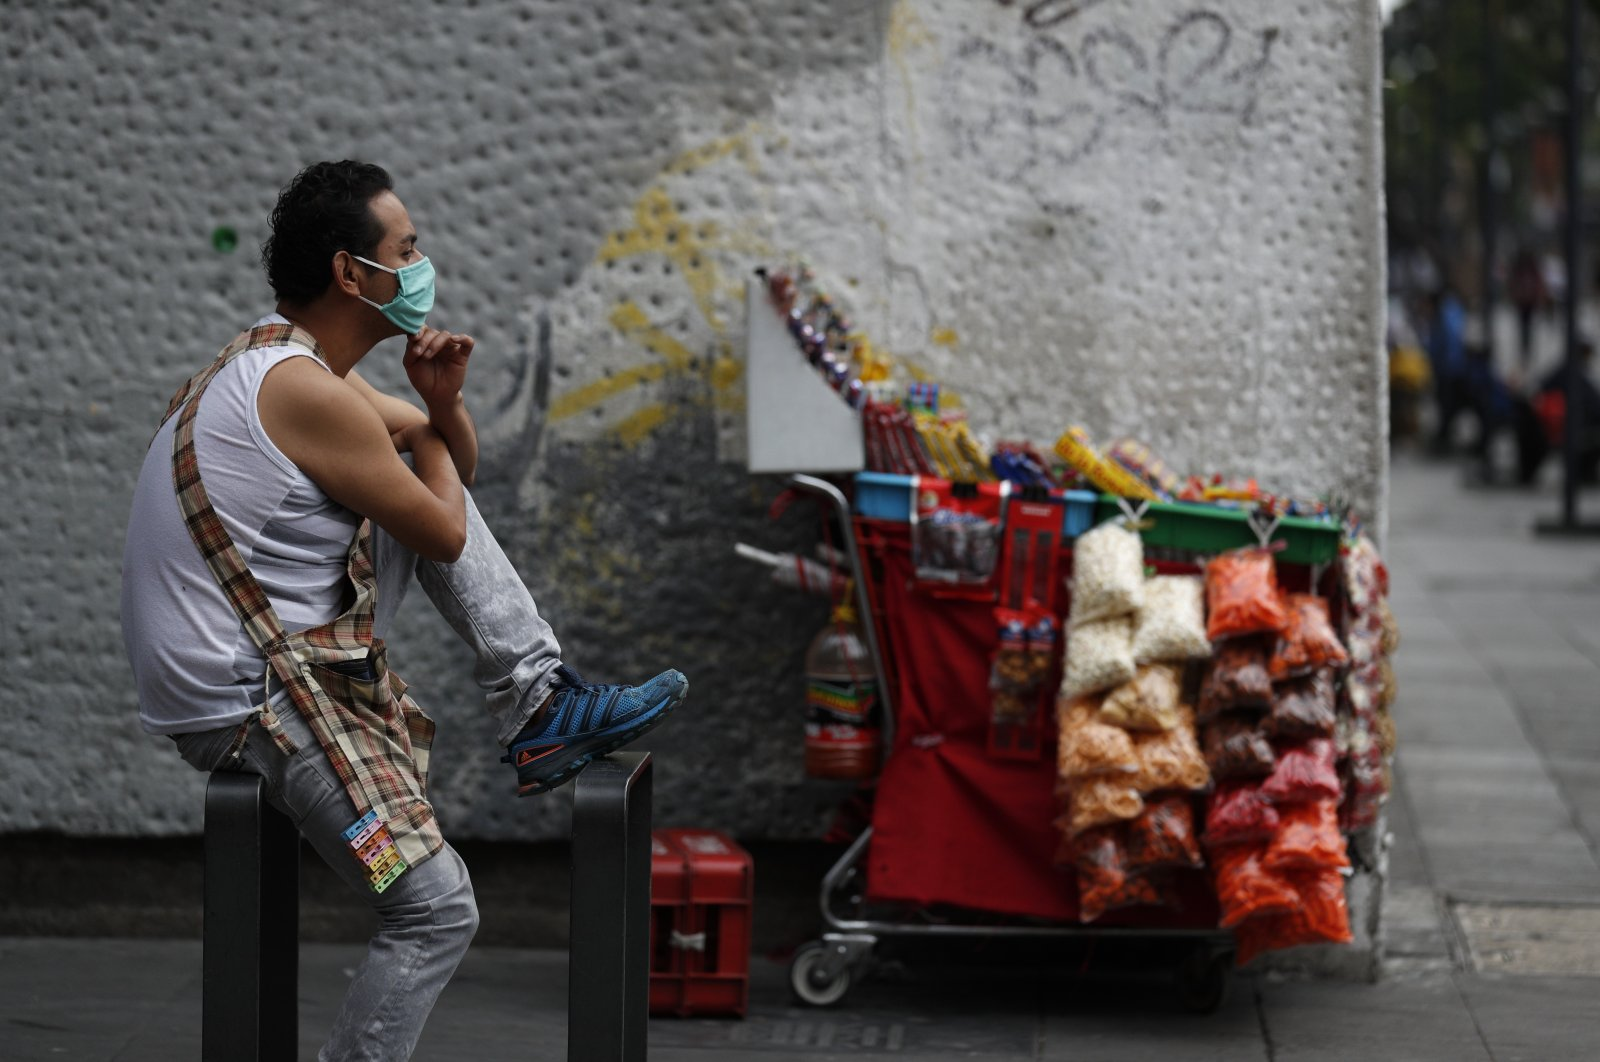 A snack vendor wears a mask as he waits for customers by his cart, in central Mexico City, Mexico, May 31, 2020. (AP Photo)